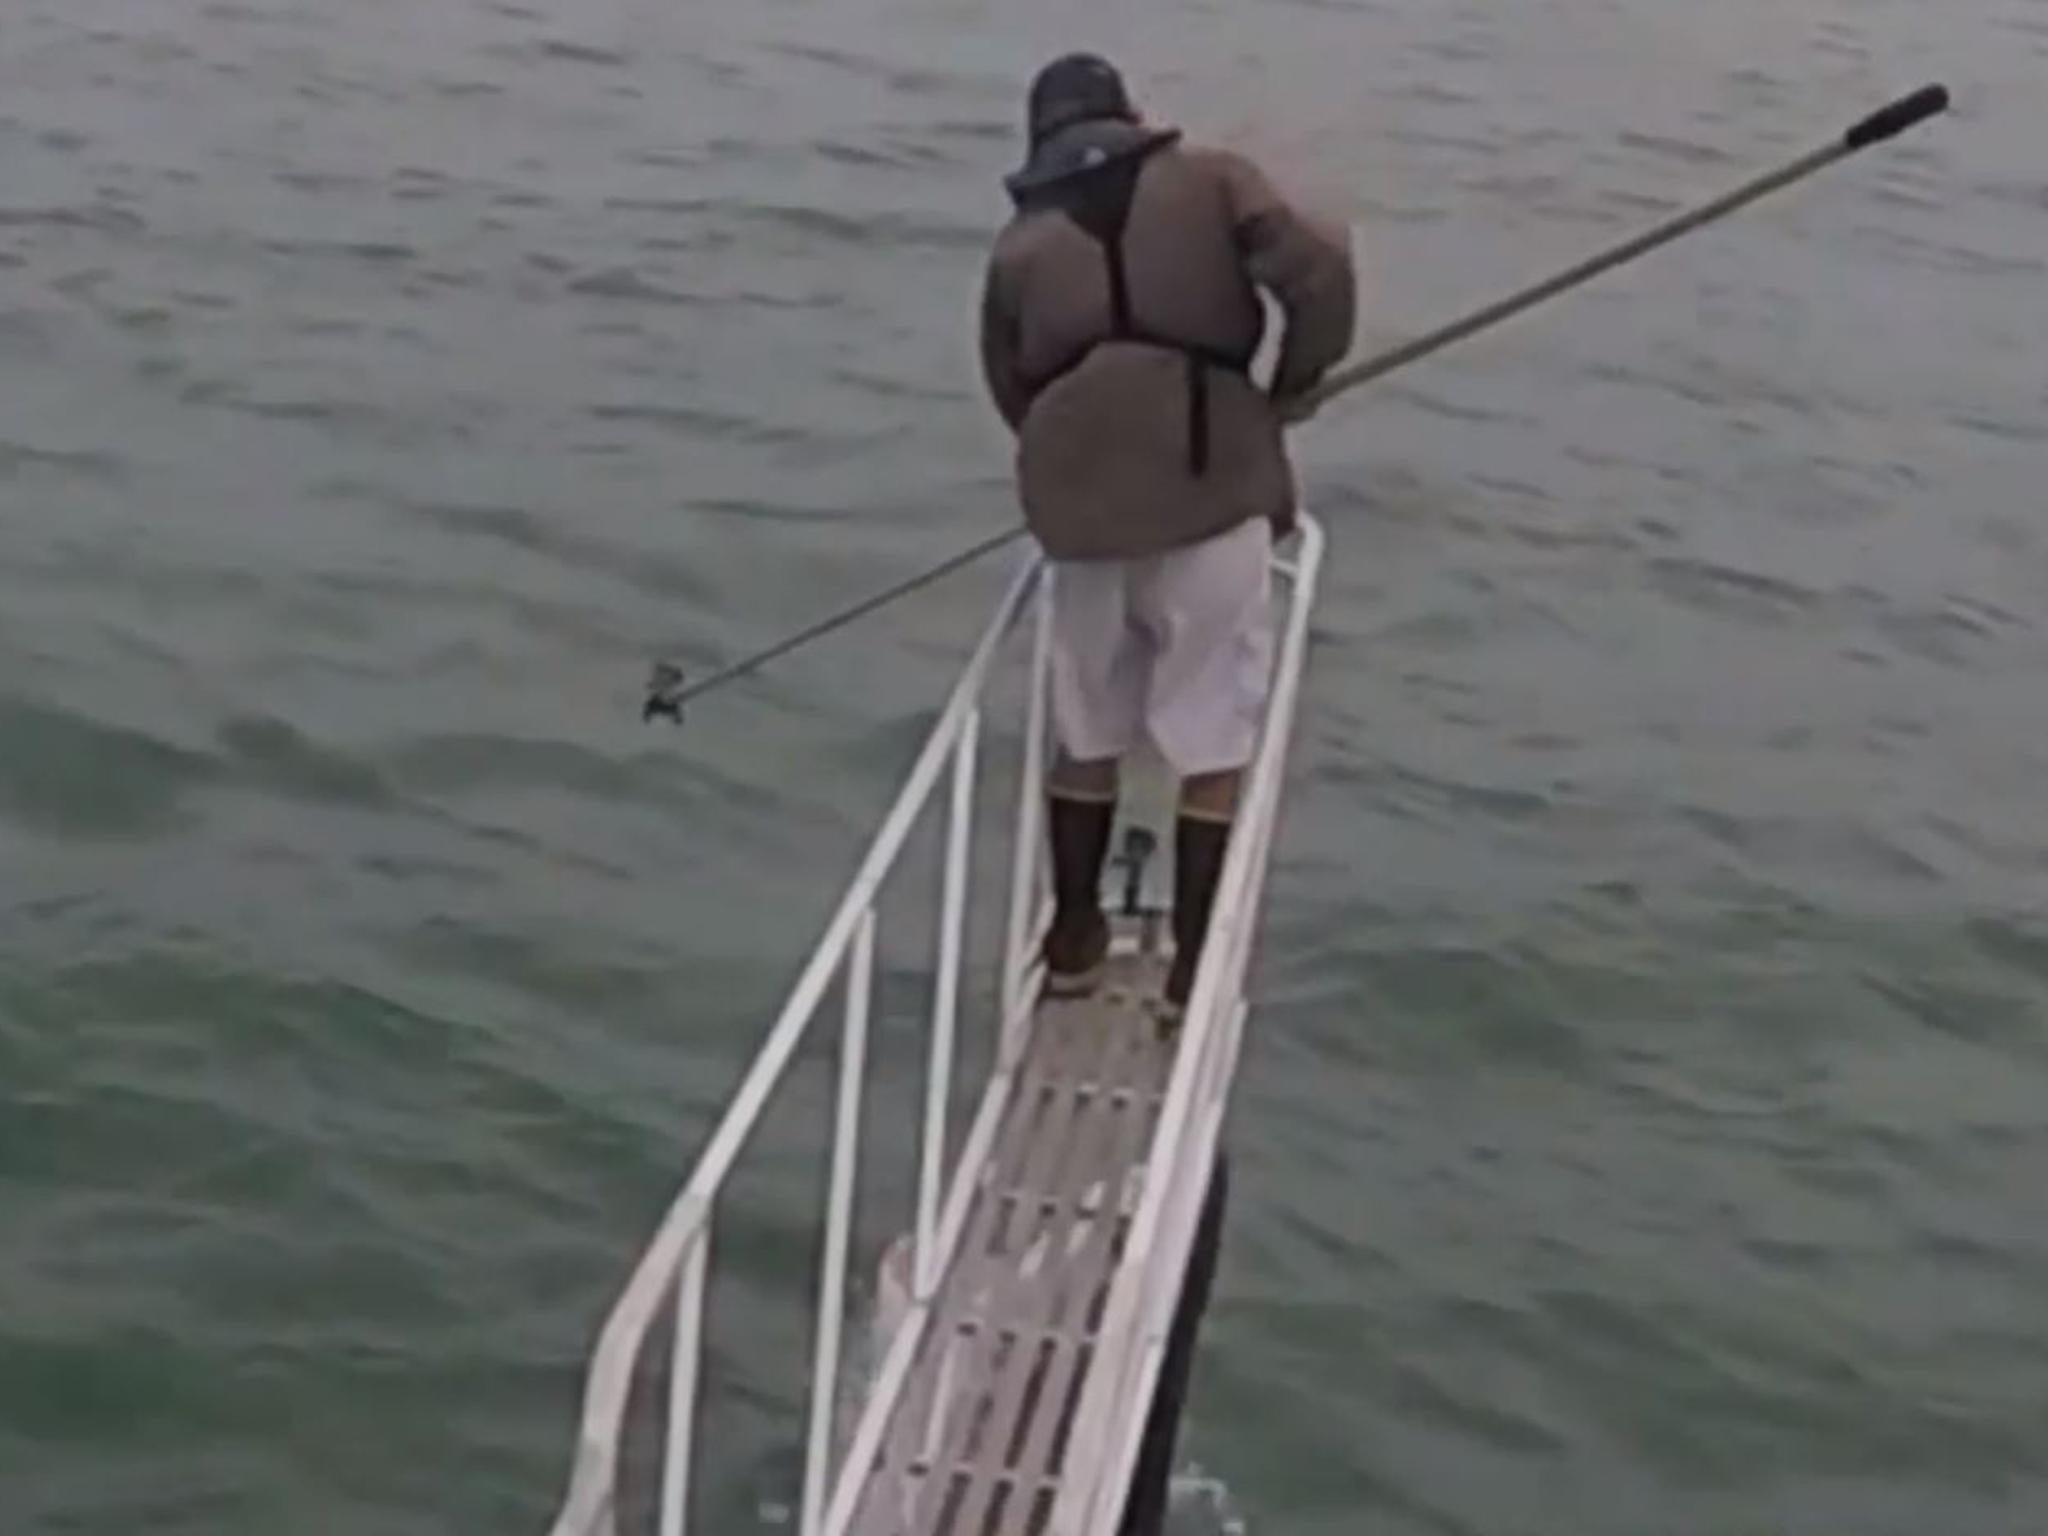 Off the coast of the United States, a shark jumped into a boat to fishermen